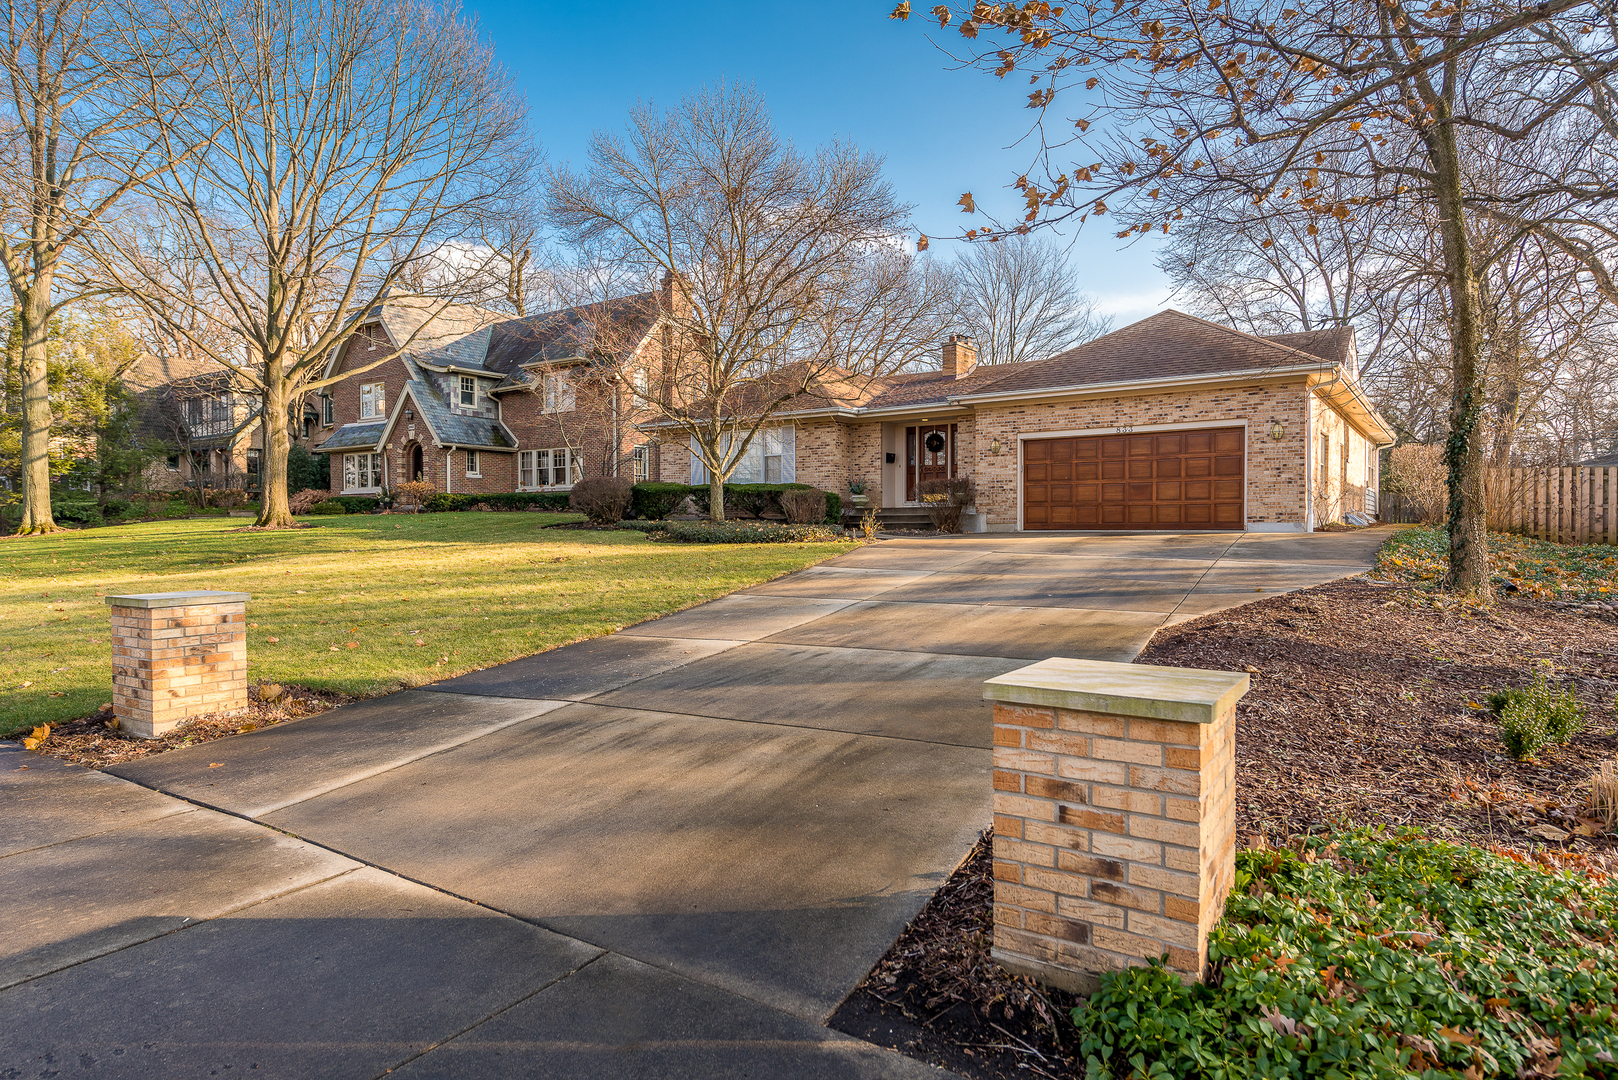 Residential Homes and Real Estate for Sale in